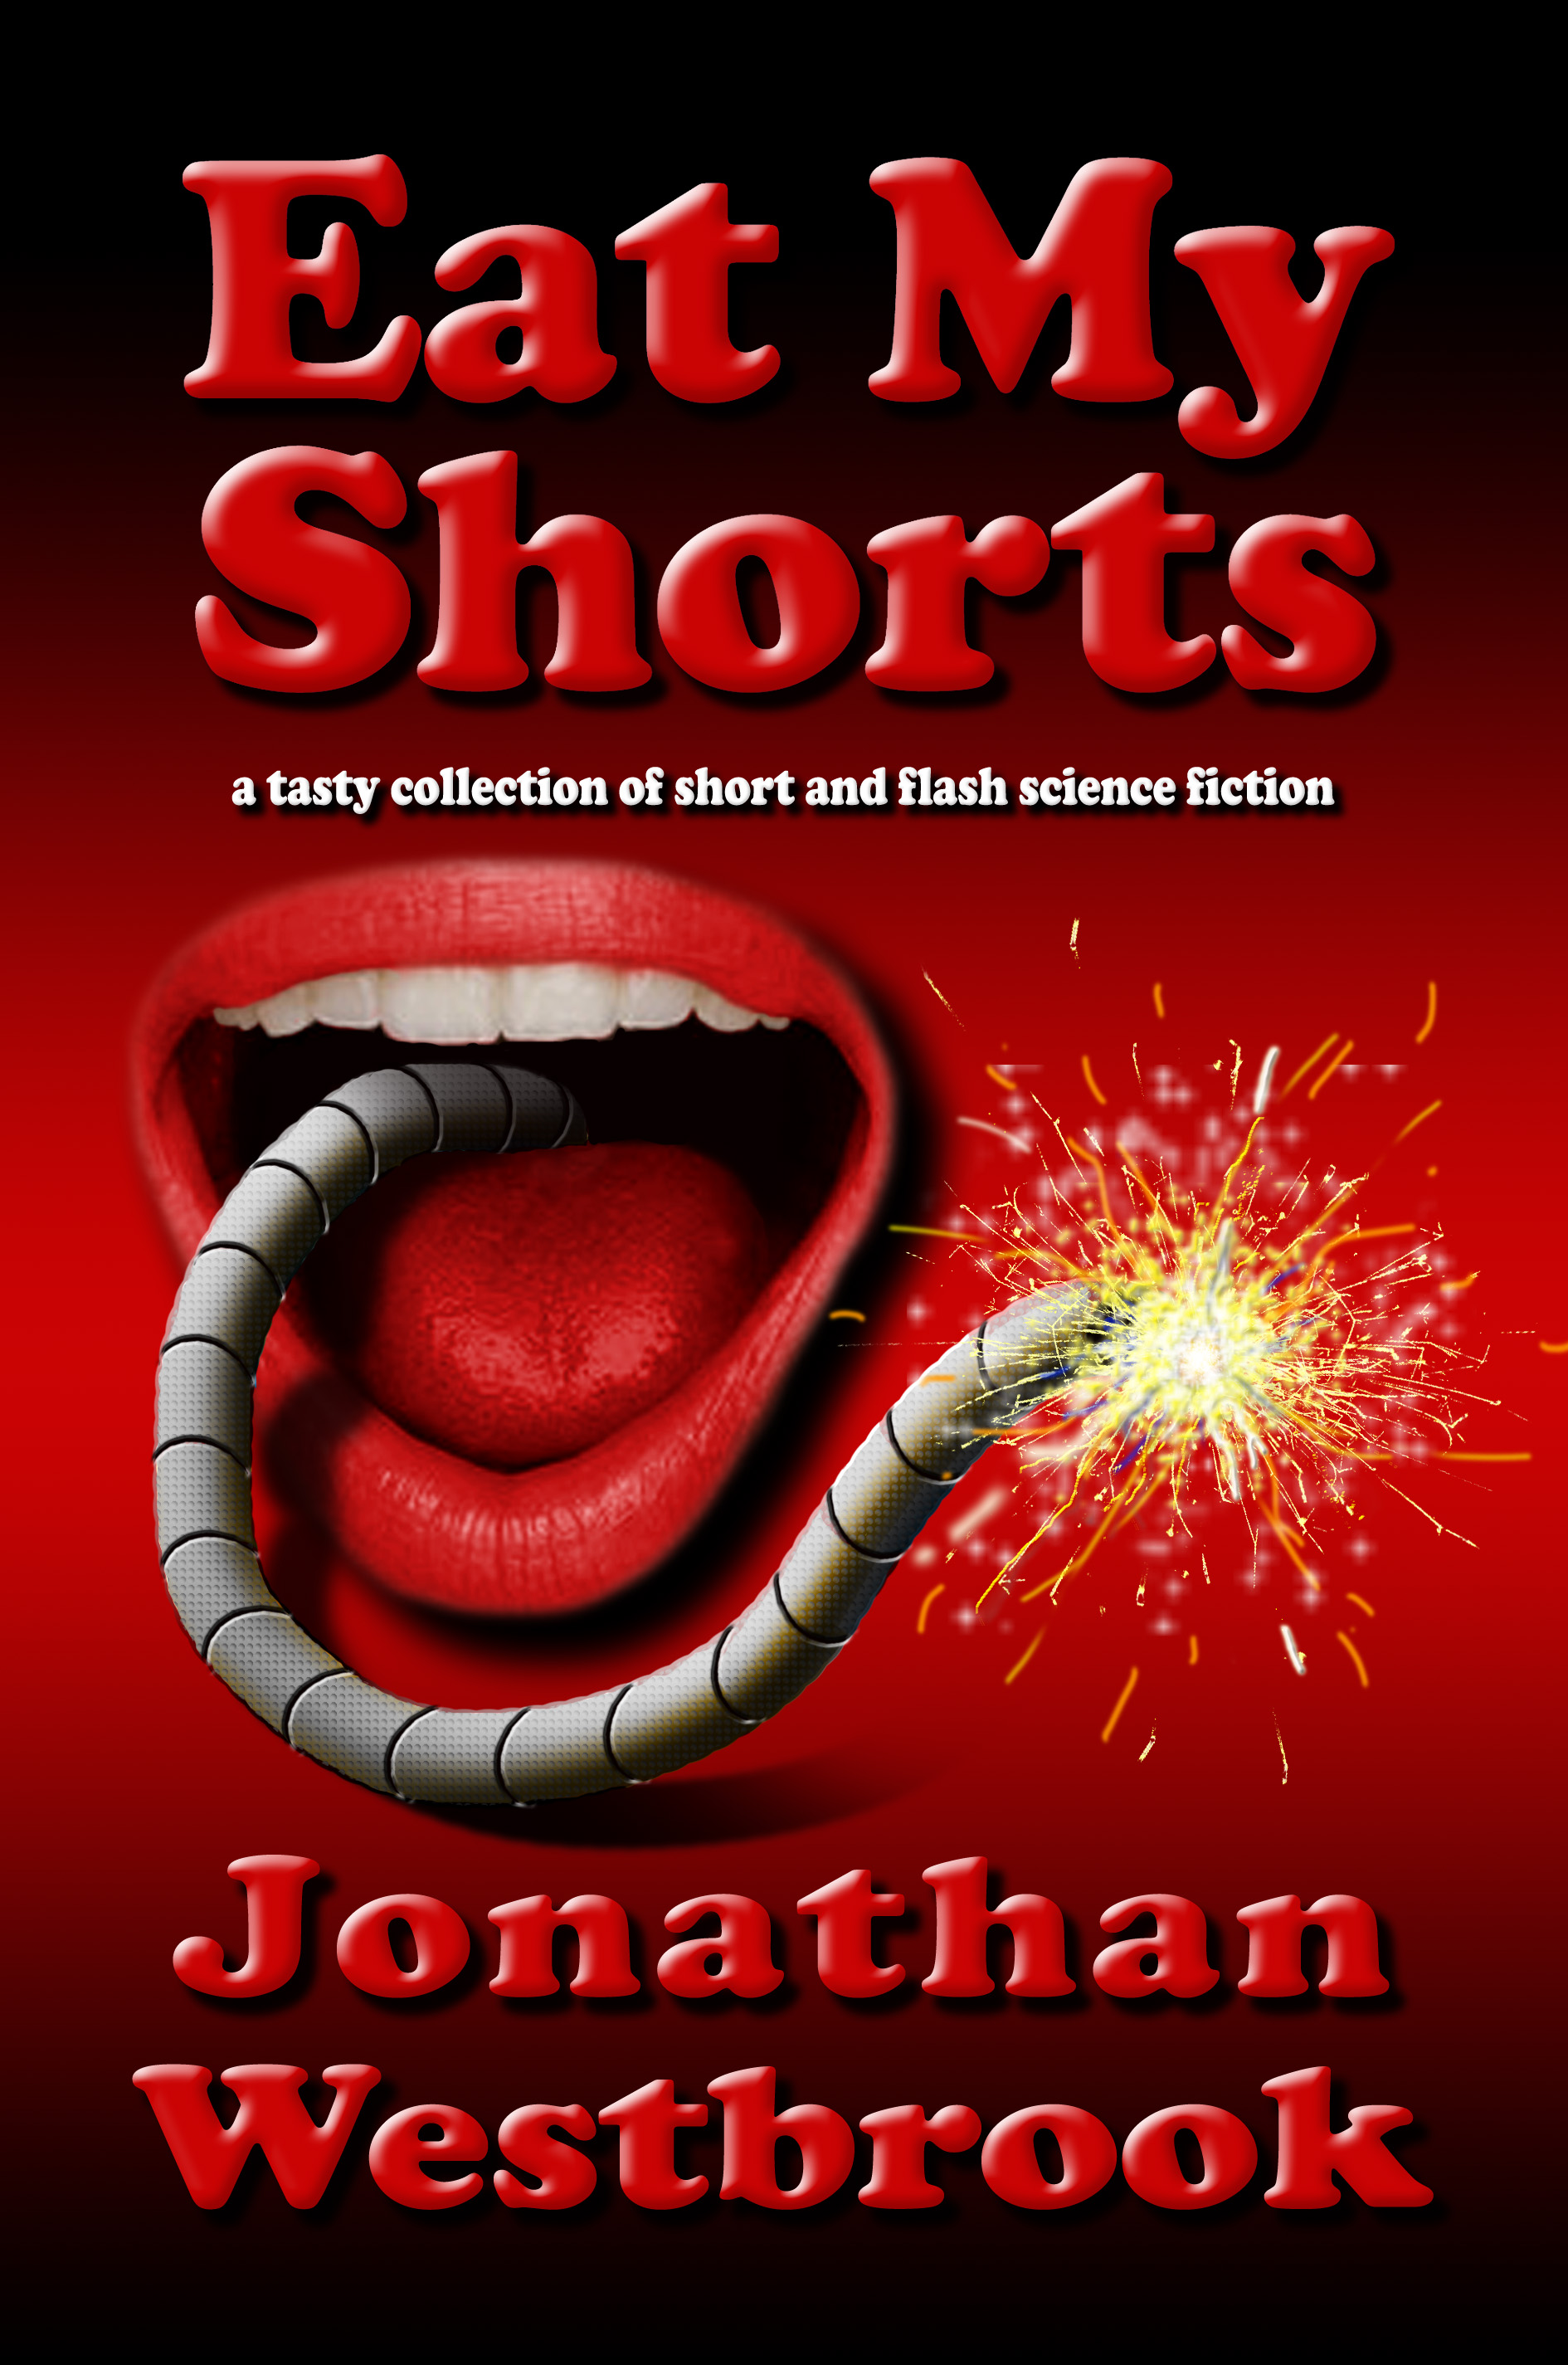 Eat My Shorts by Jonathan Westbrook